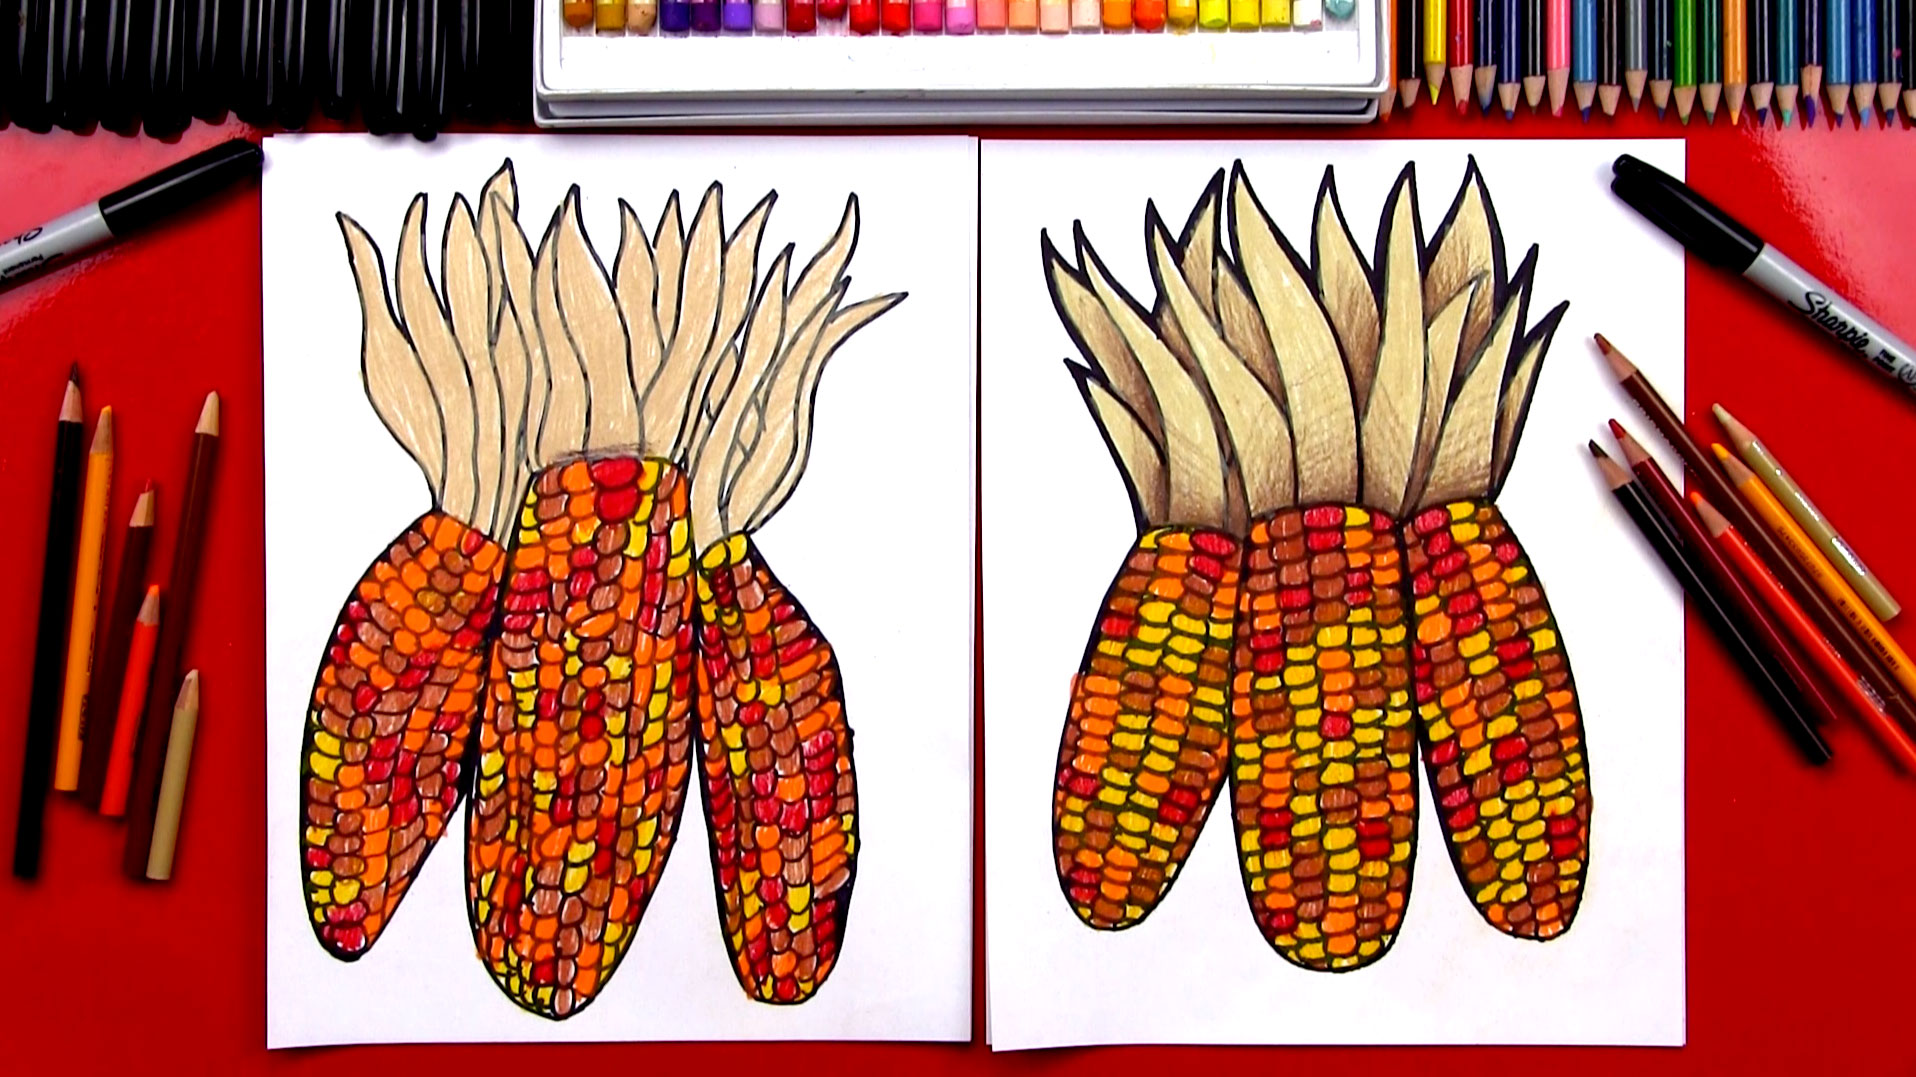 Drawn corn (Flint Corn) Kids  Indian